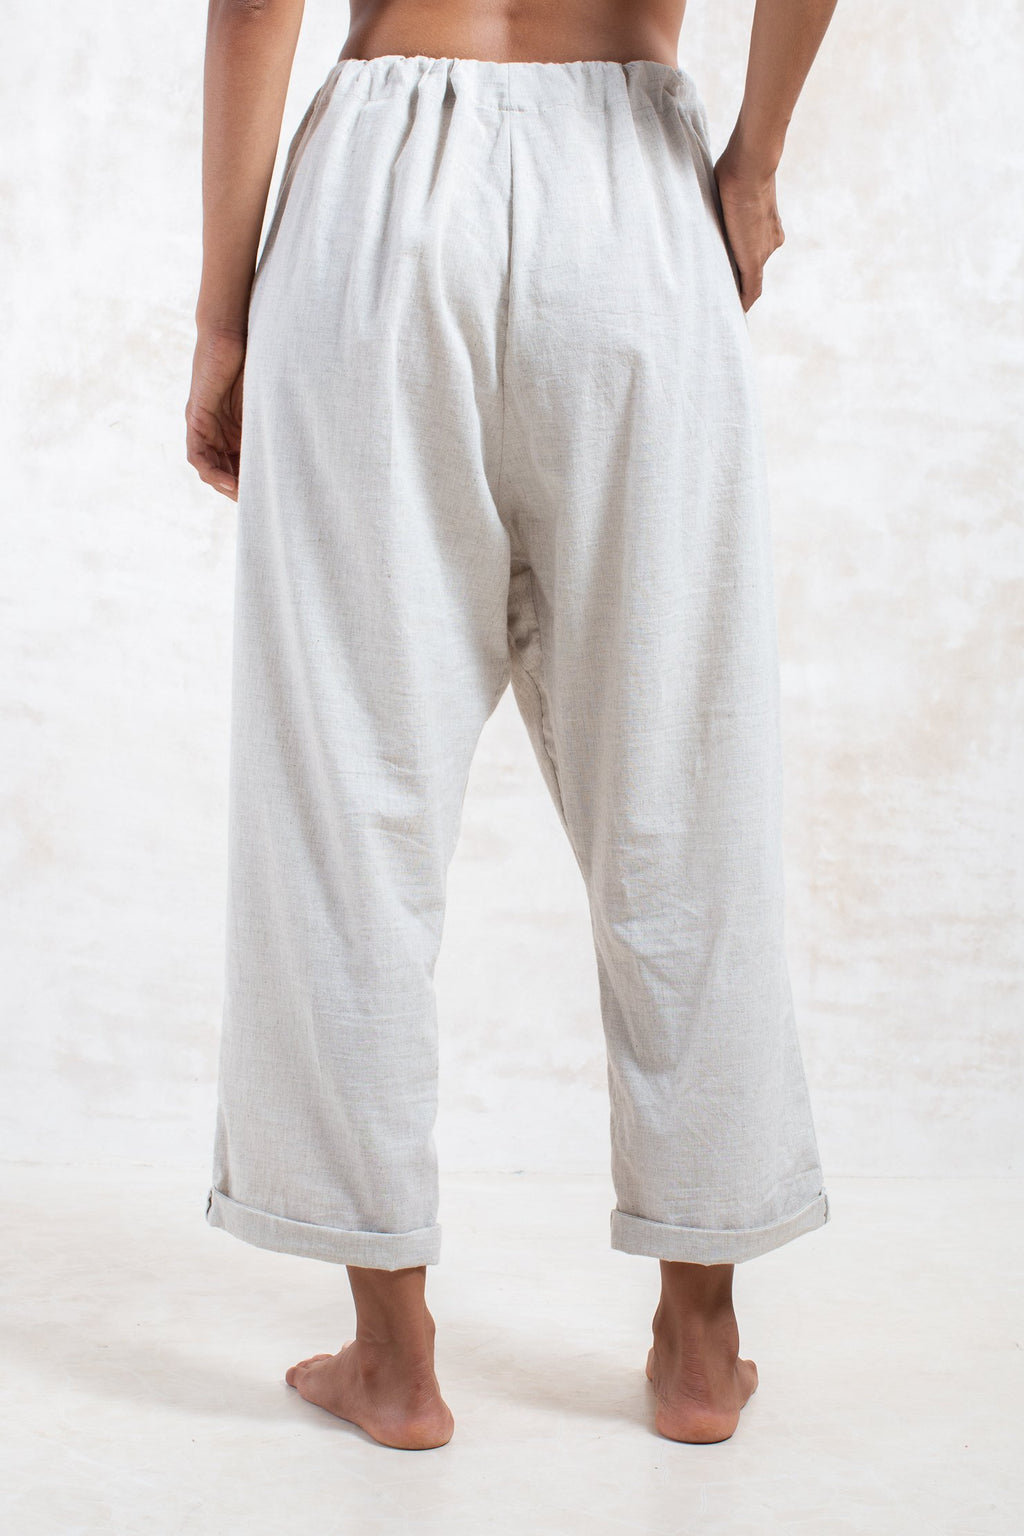 Oat Rei Love Pants